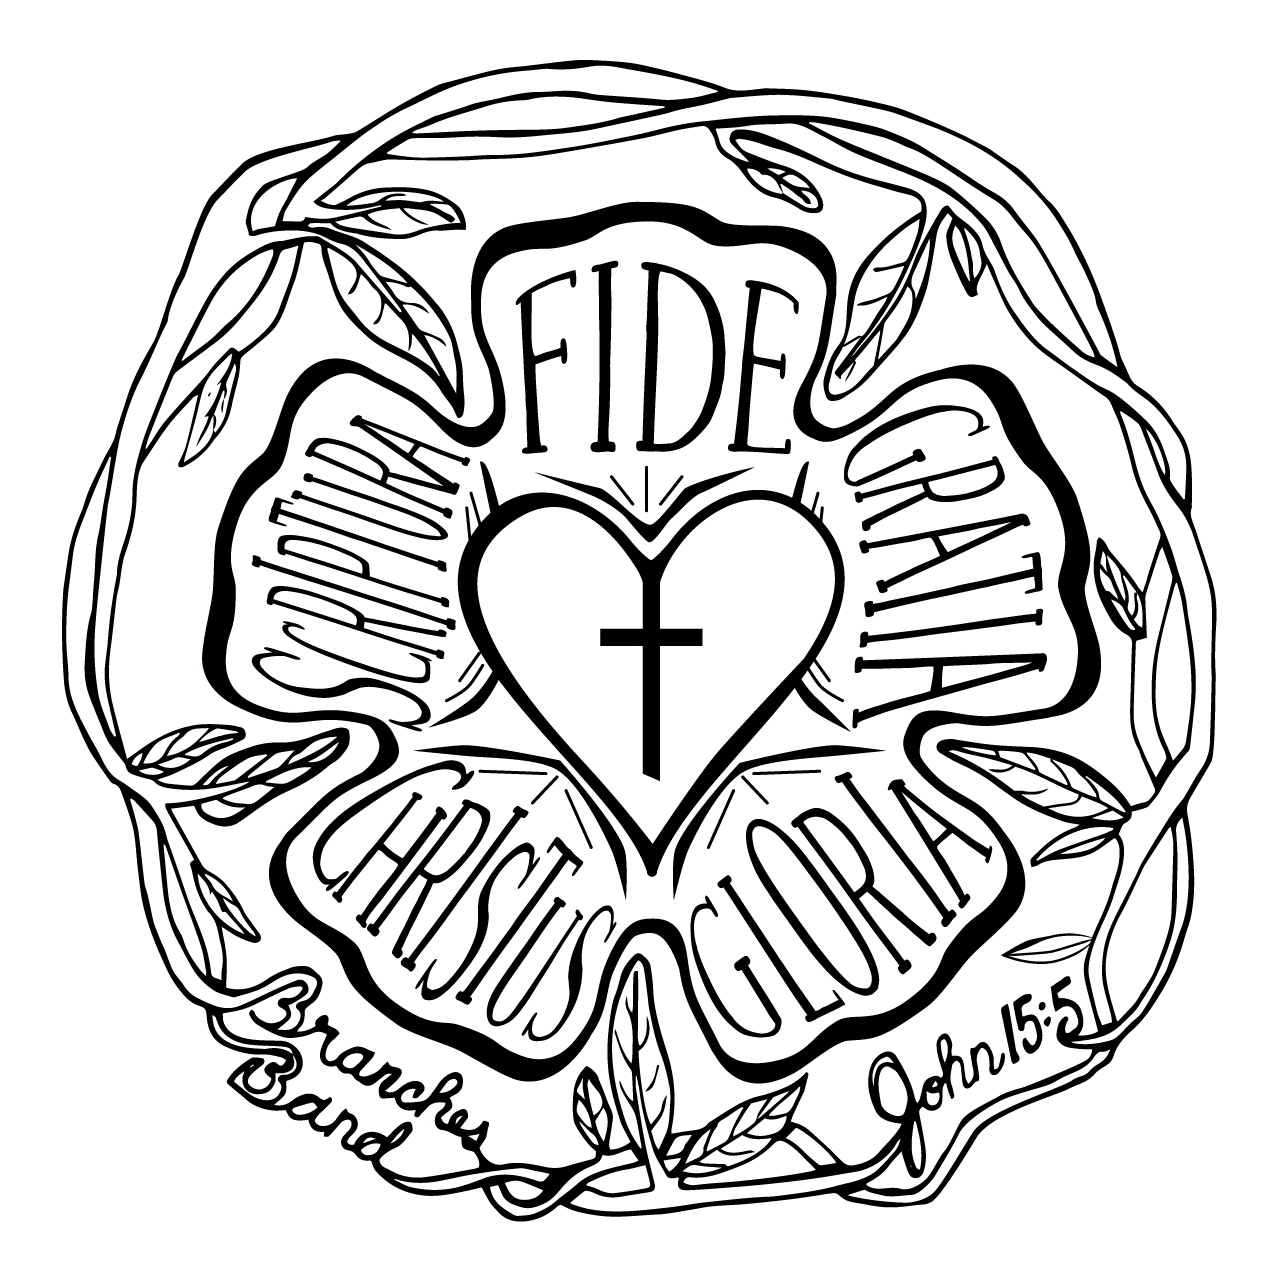 Branches Band Seal Design